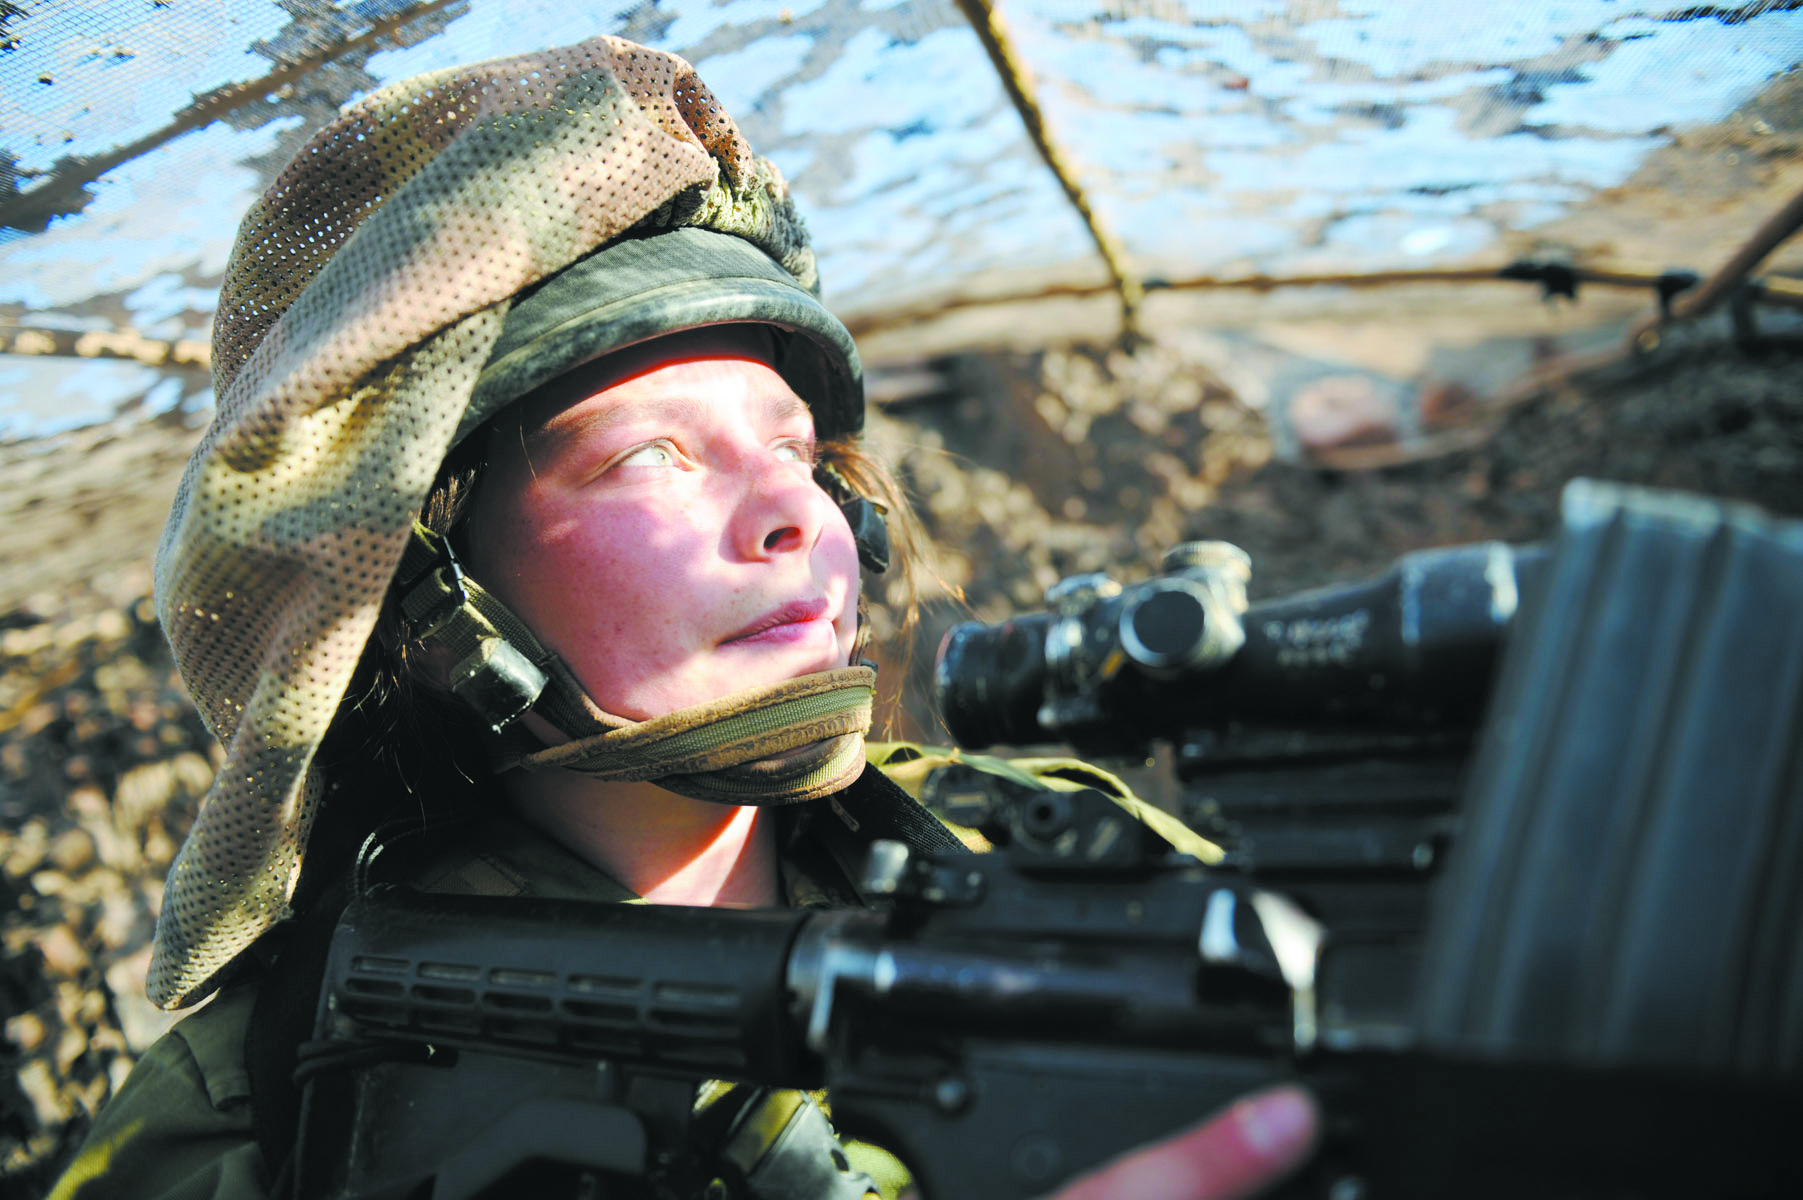 An illustrative image of an IDF female soldier.